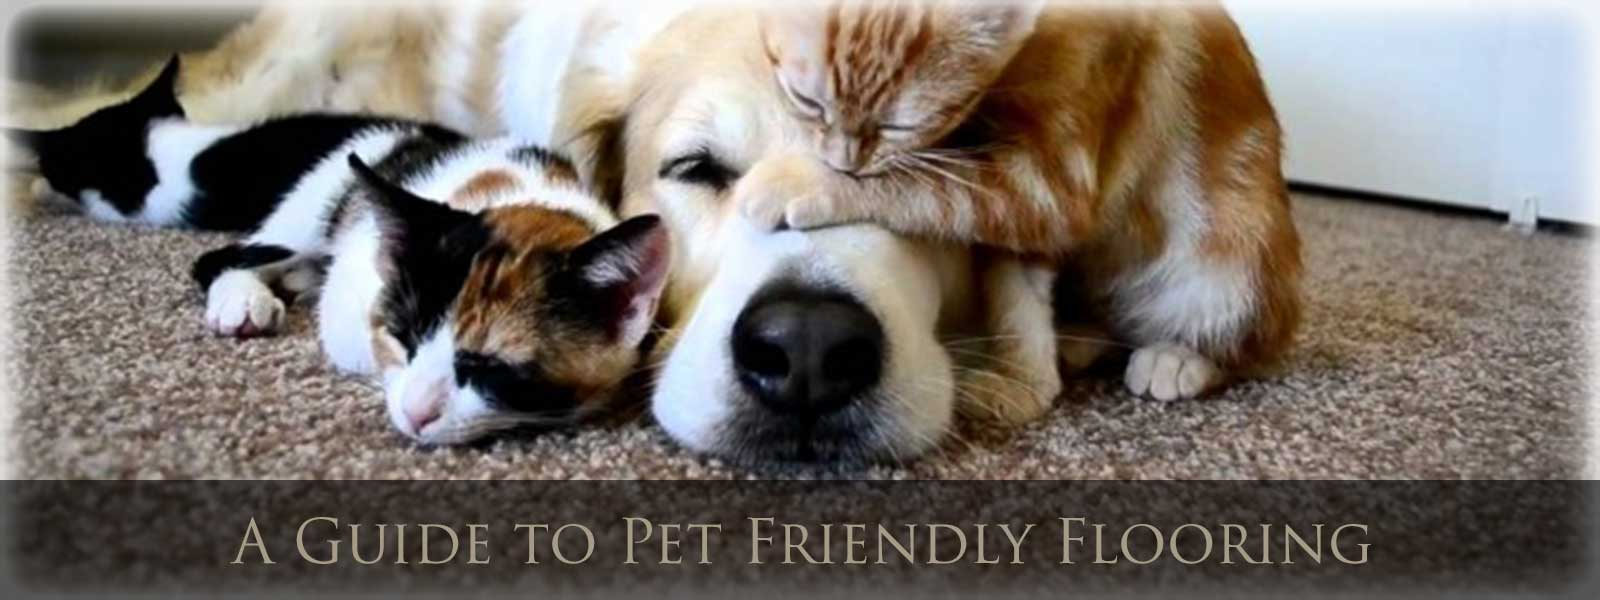 A Guide To Pet Friendly Flooring 1